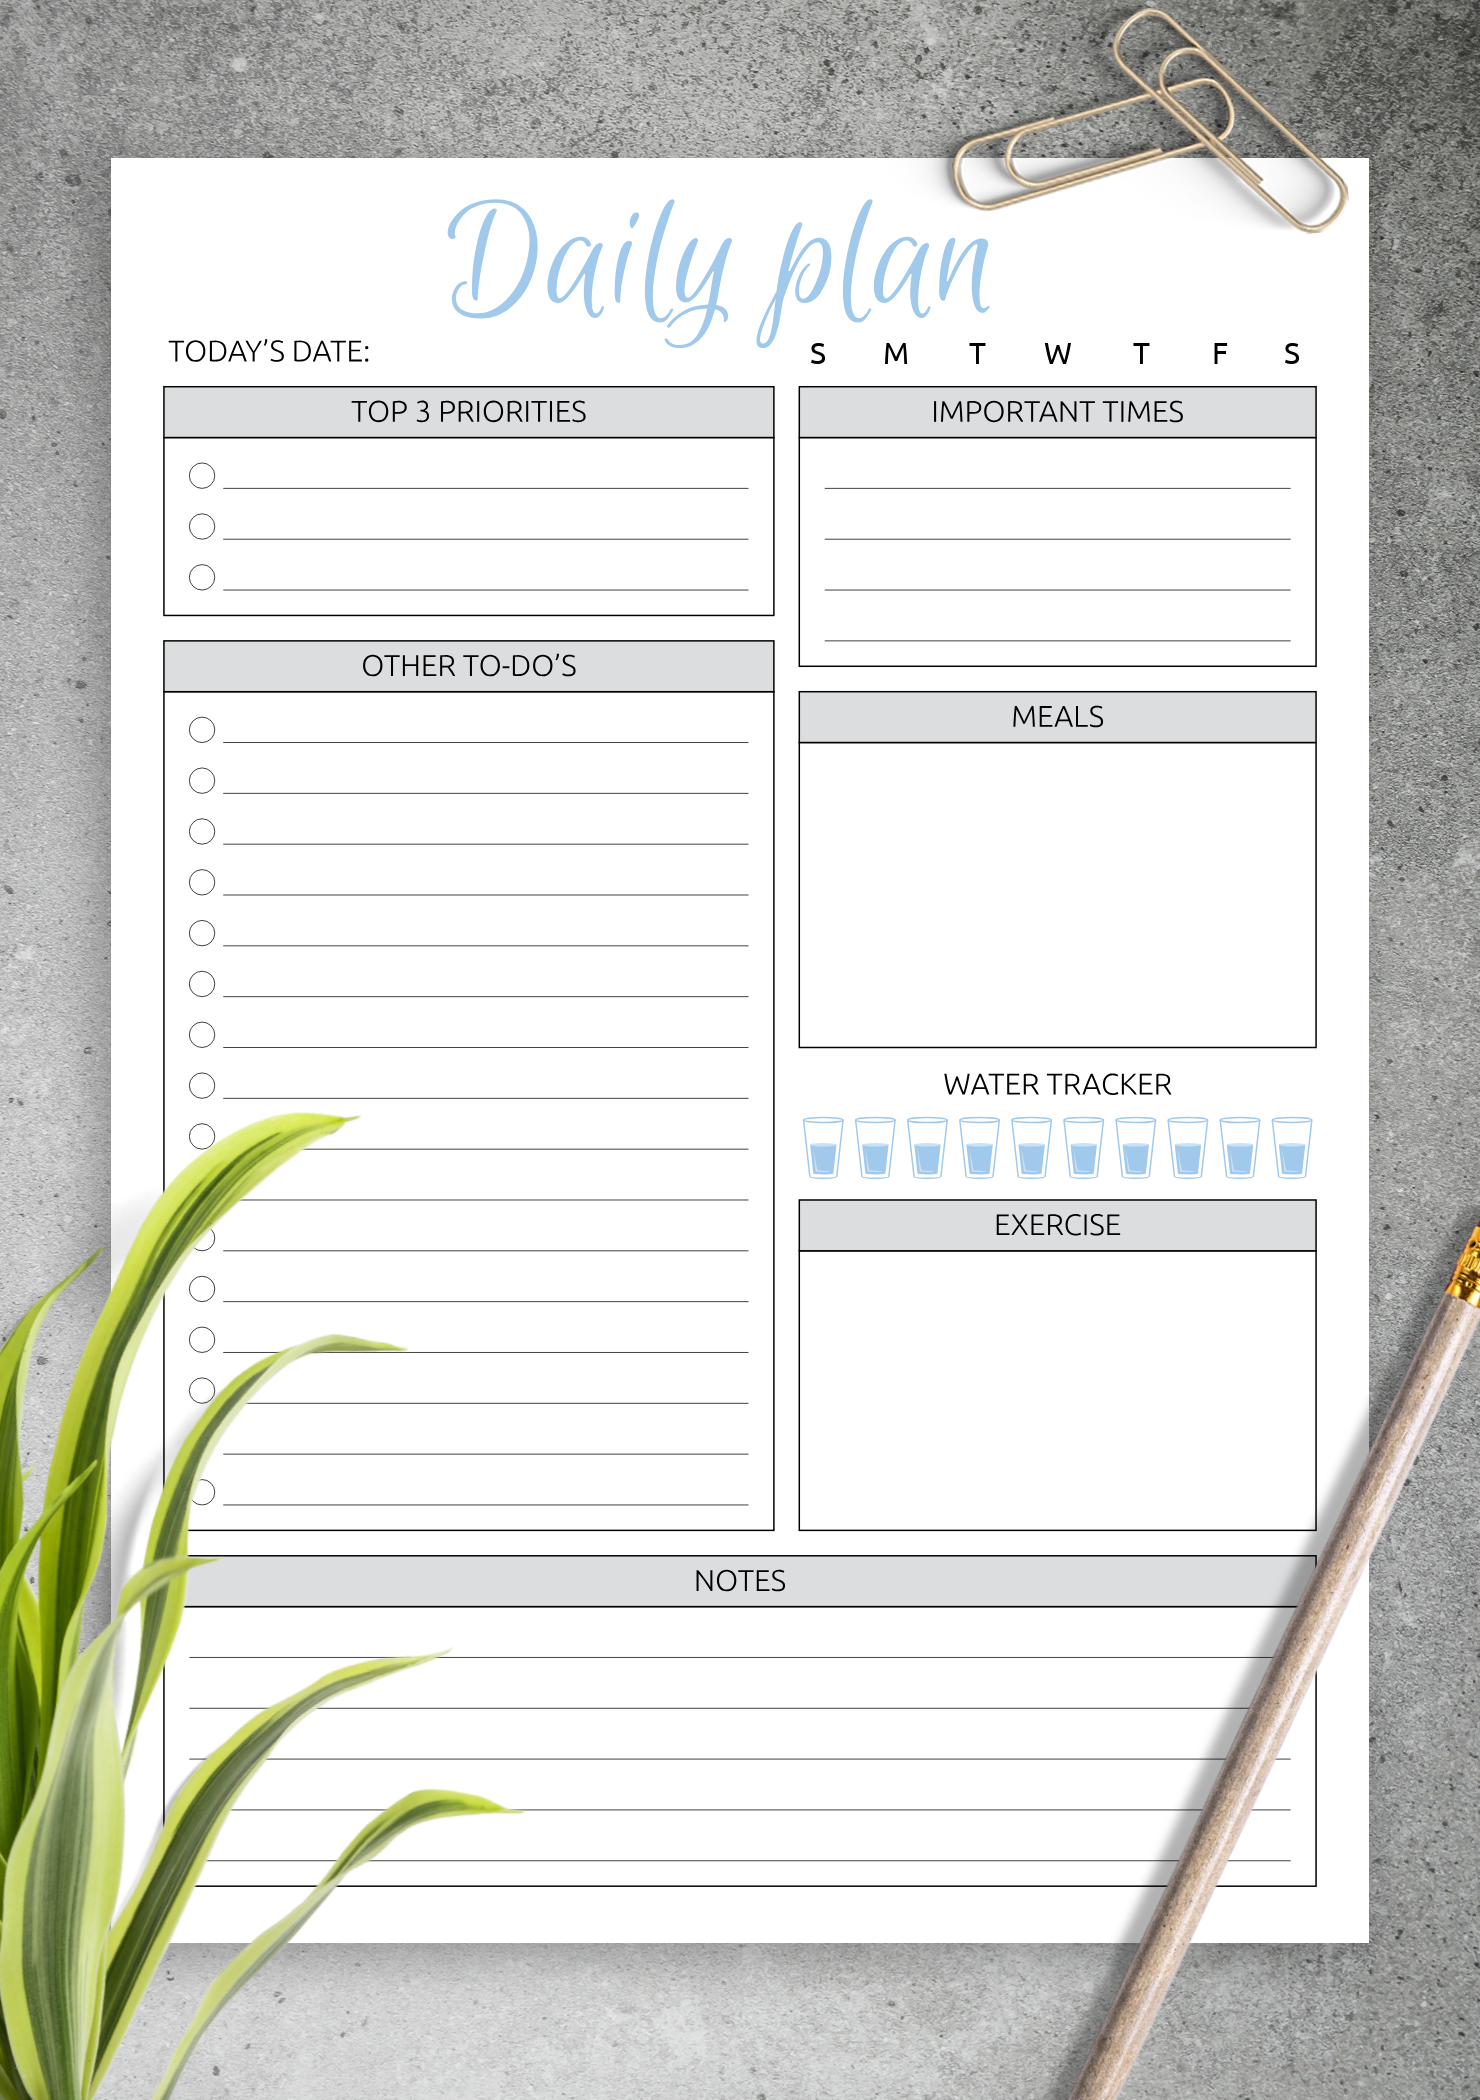 Download Printable Daily Plan with to do list & important times PDF